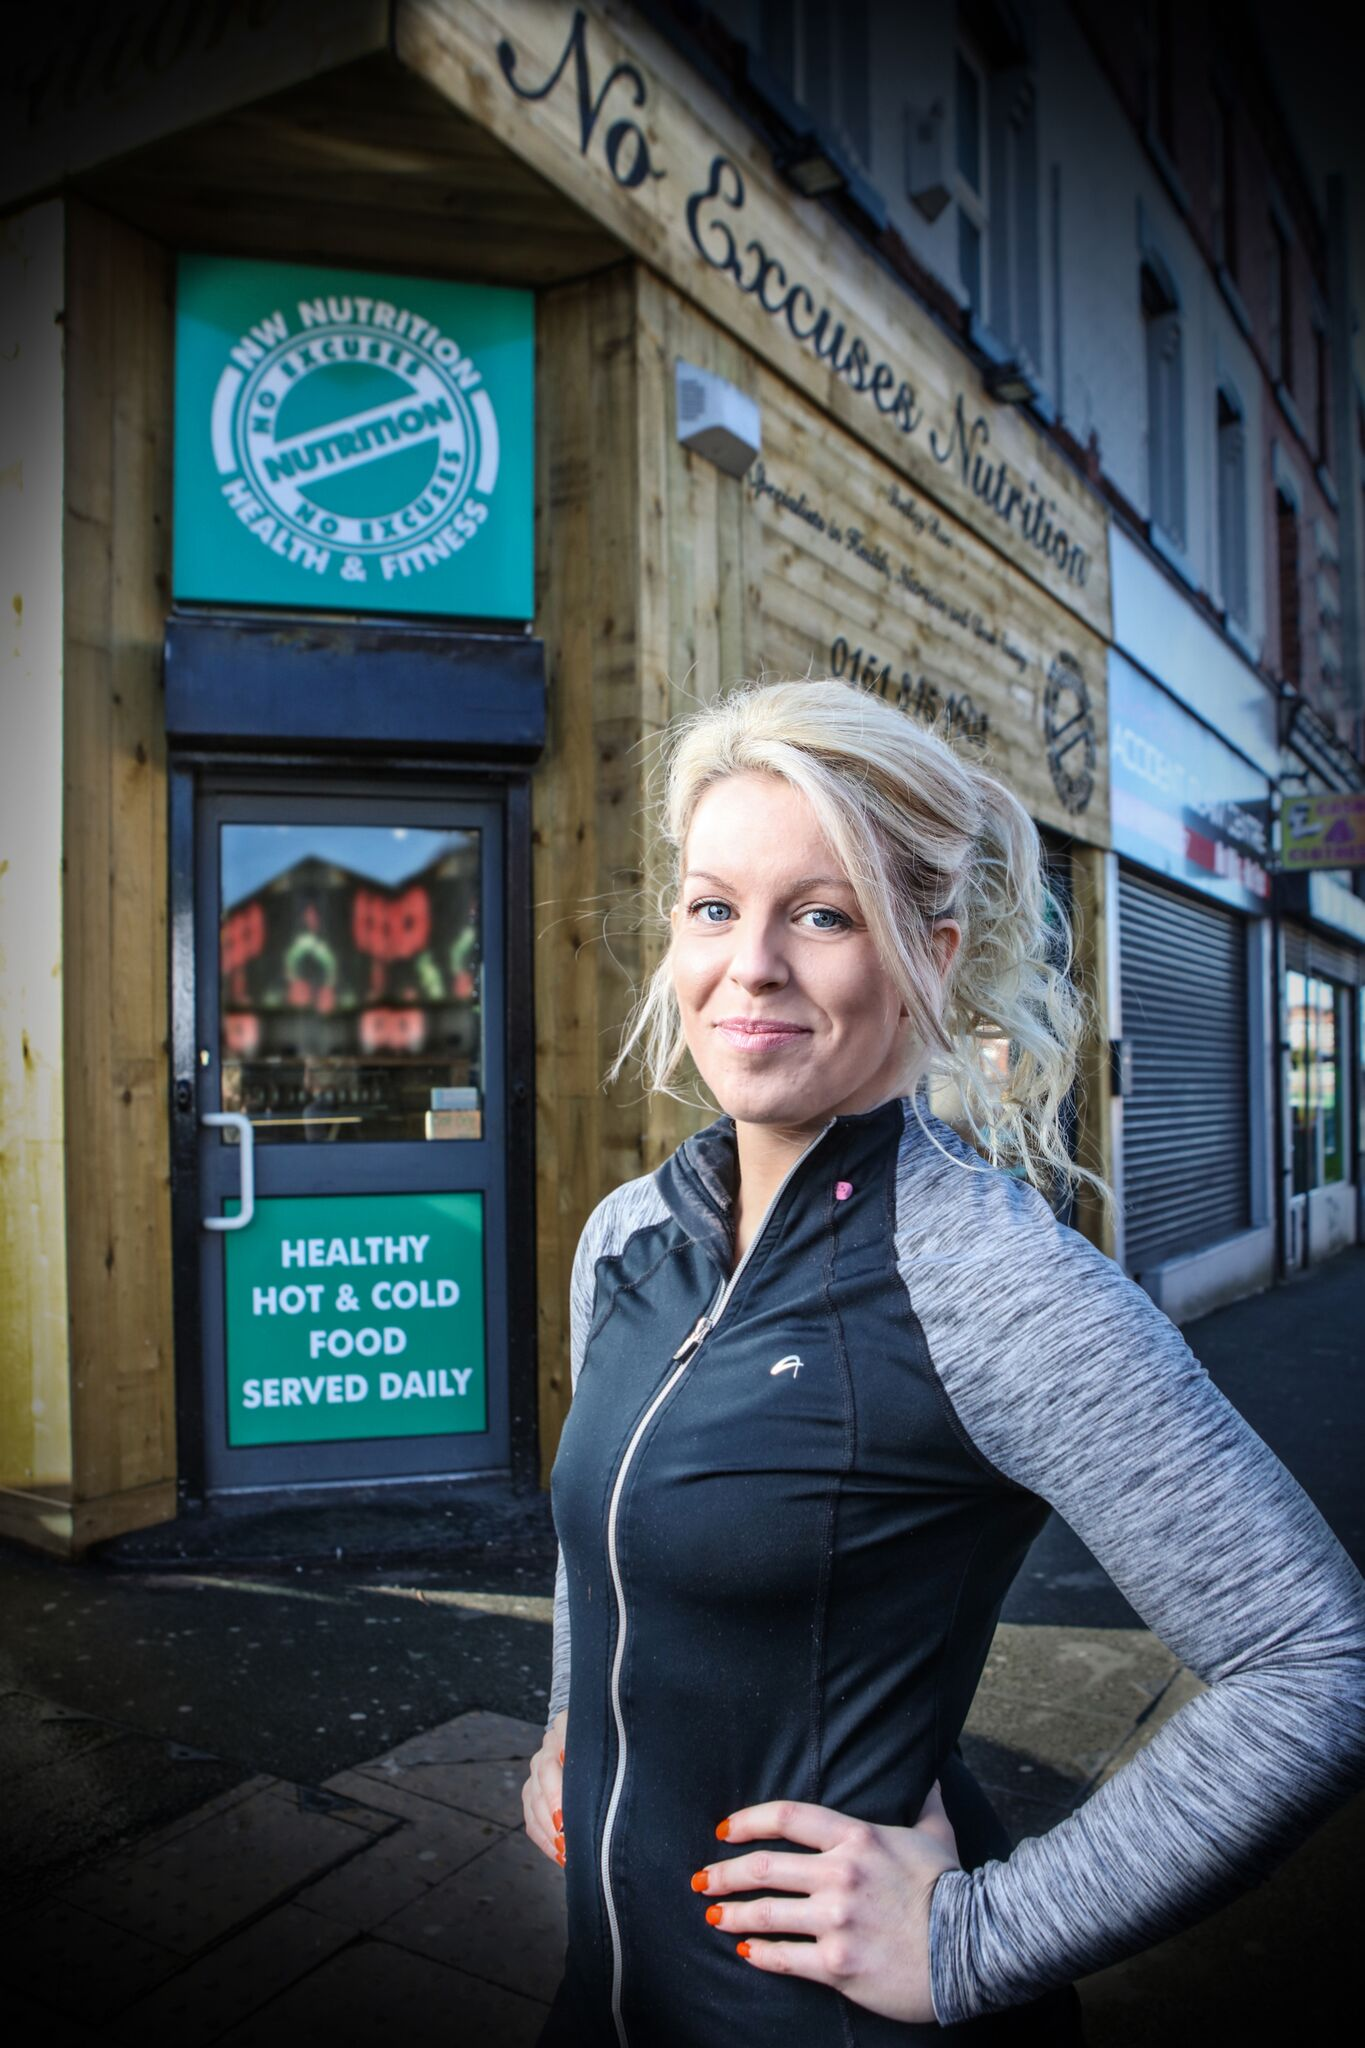 Liverpool-based wellness entrepreneur's firm No Excuses Nutrition & Fitness going from strength to strength